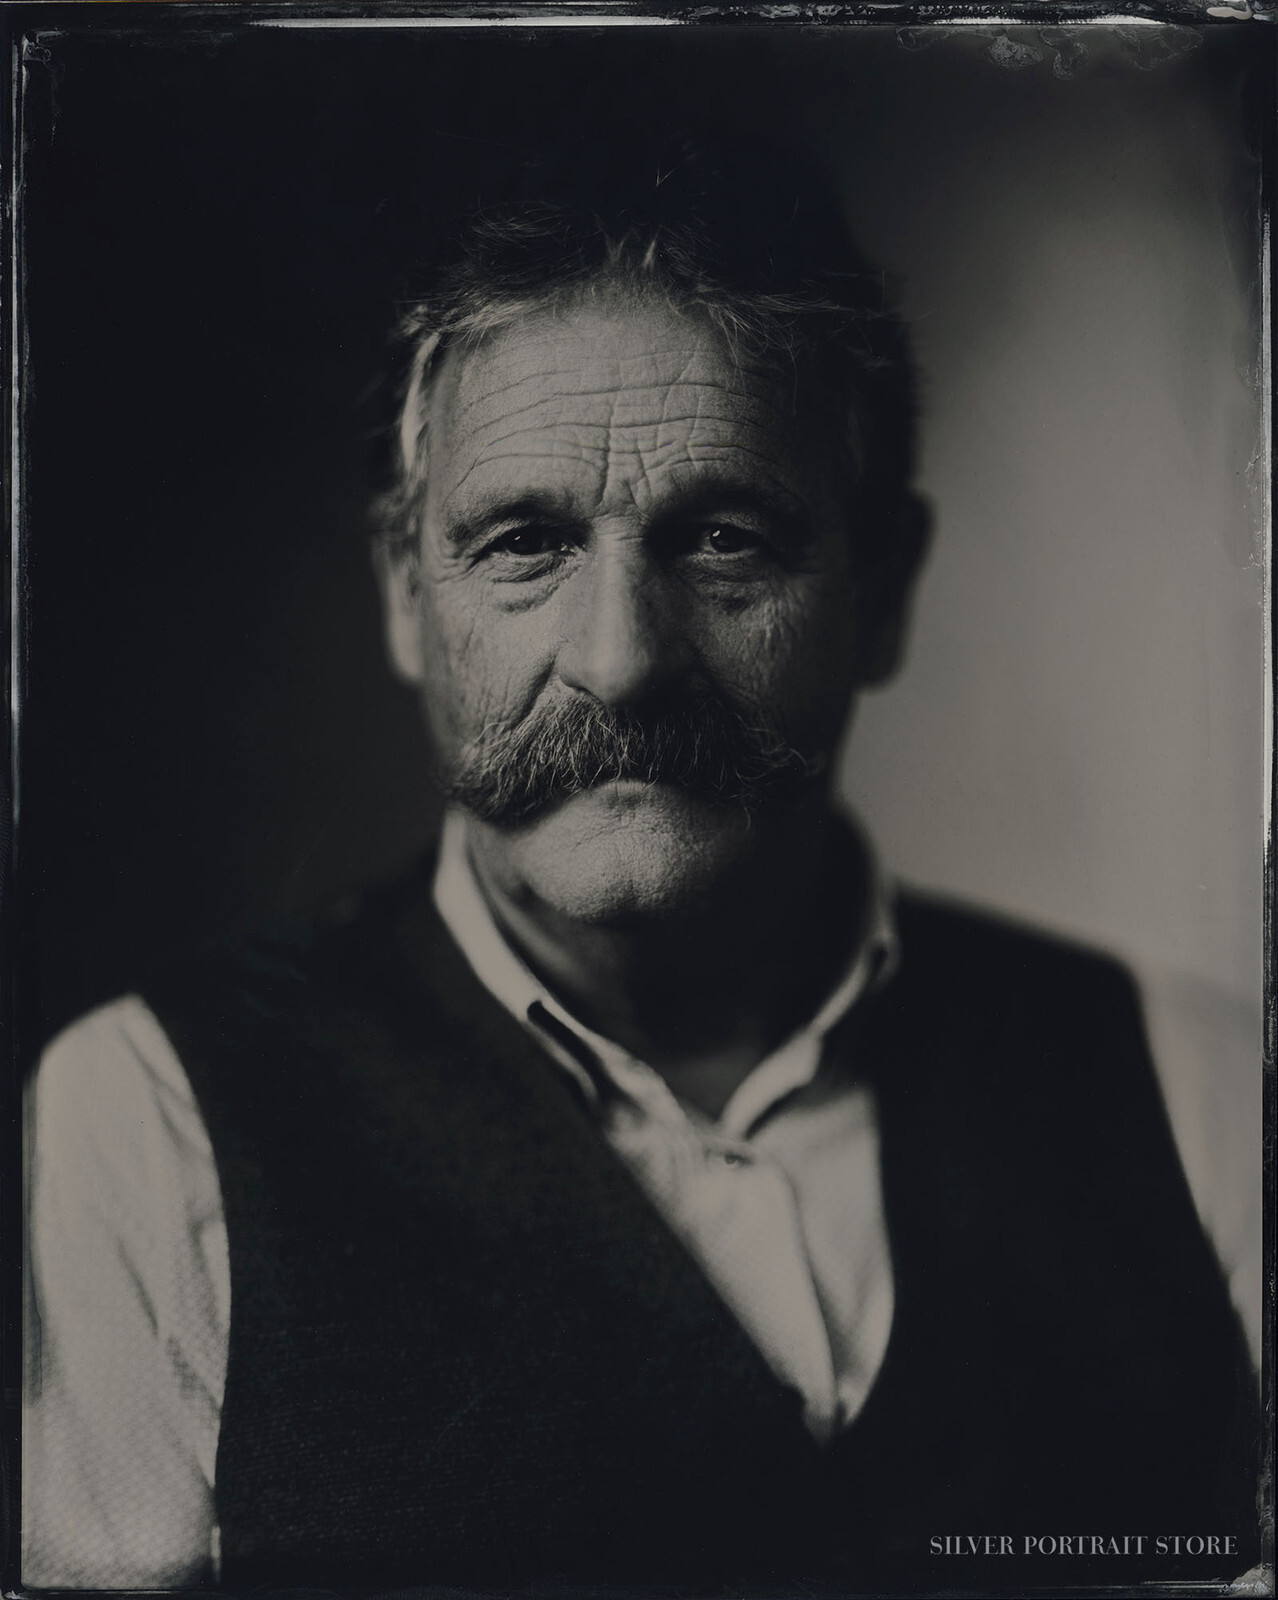 Cees-Silver Portrait Store-Wet plate collodion-Tintype 20 x 25 cm.